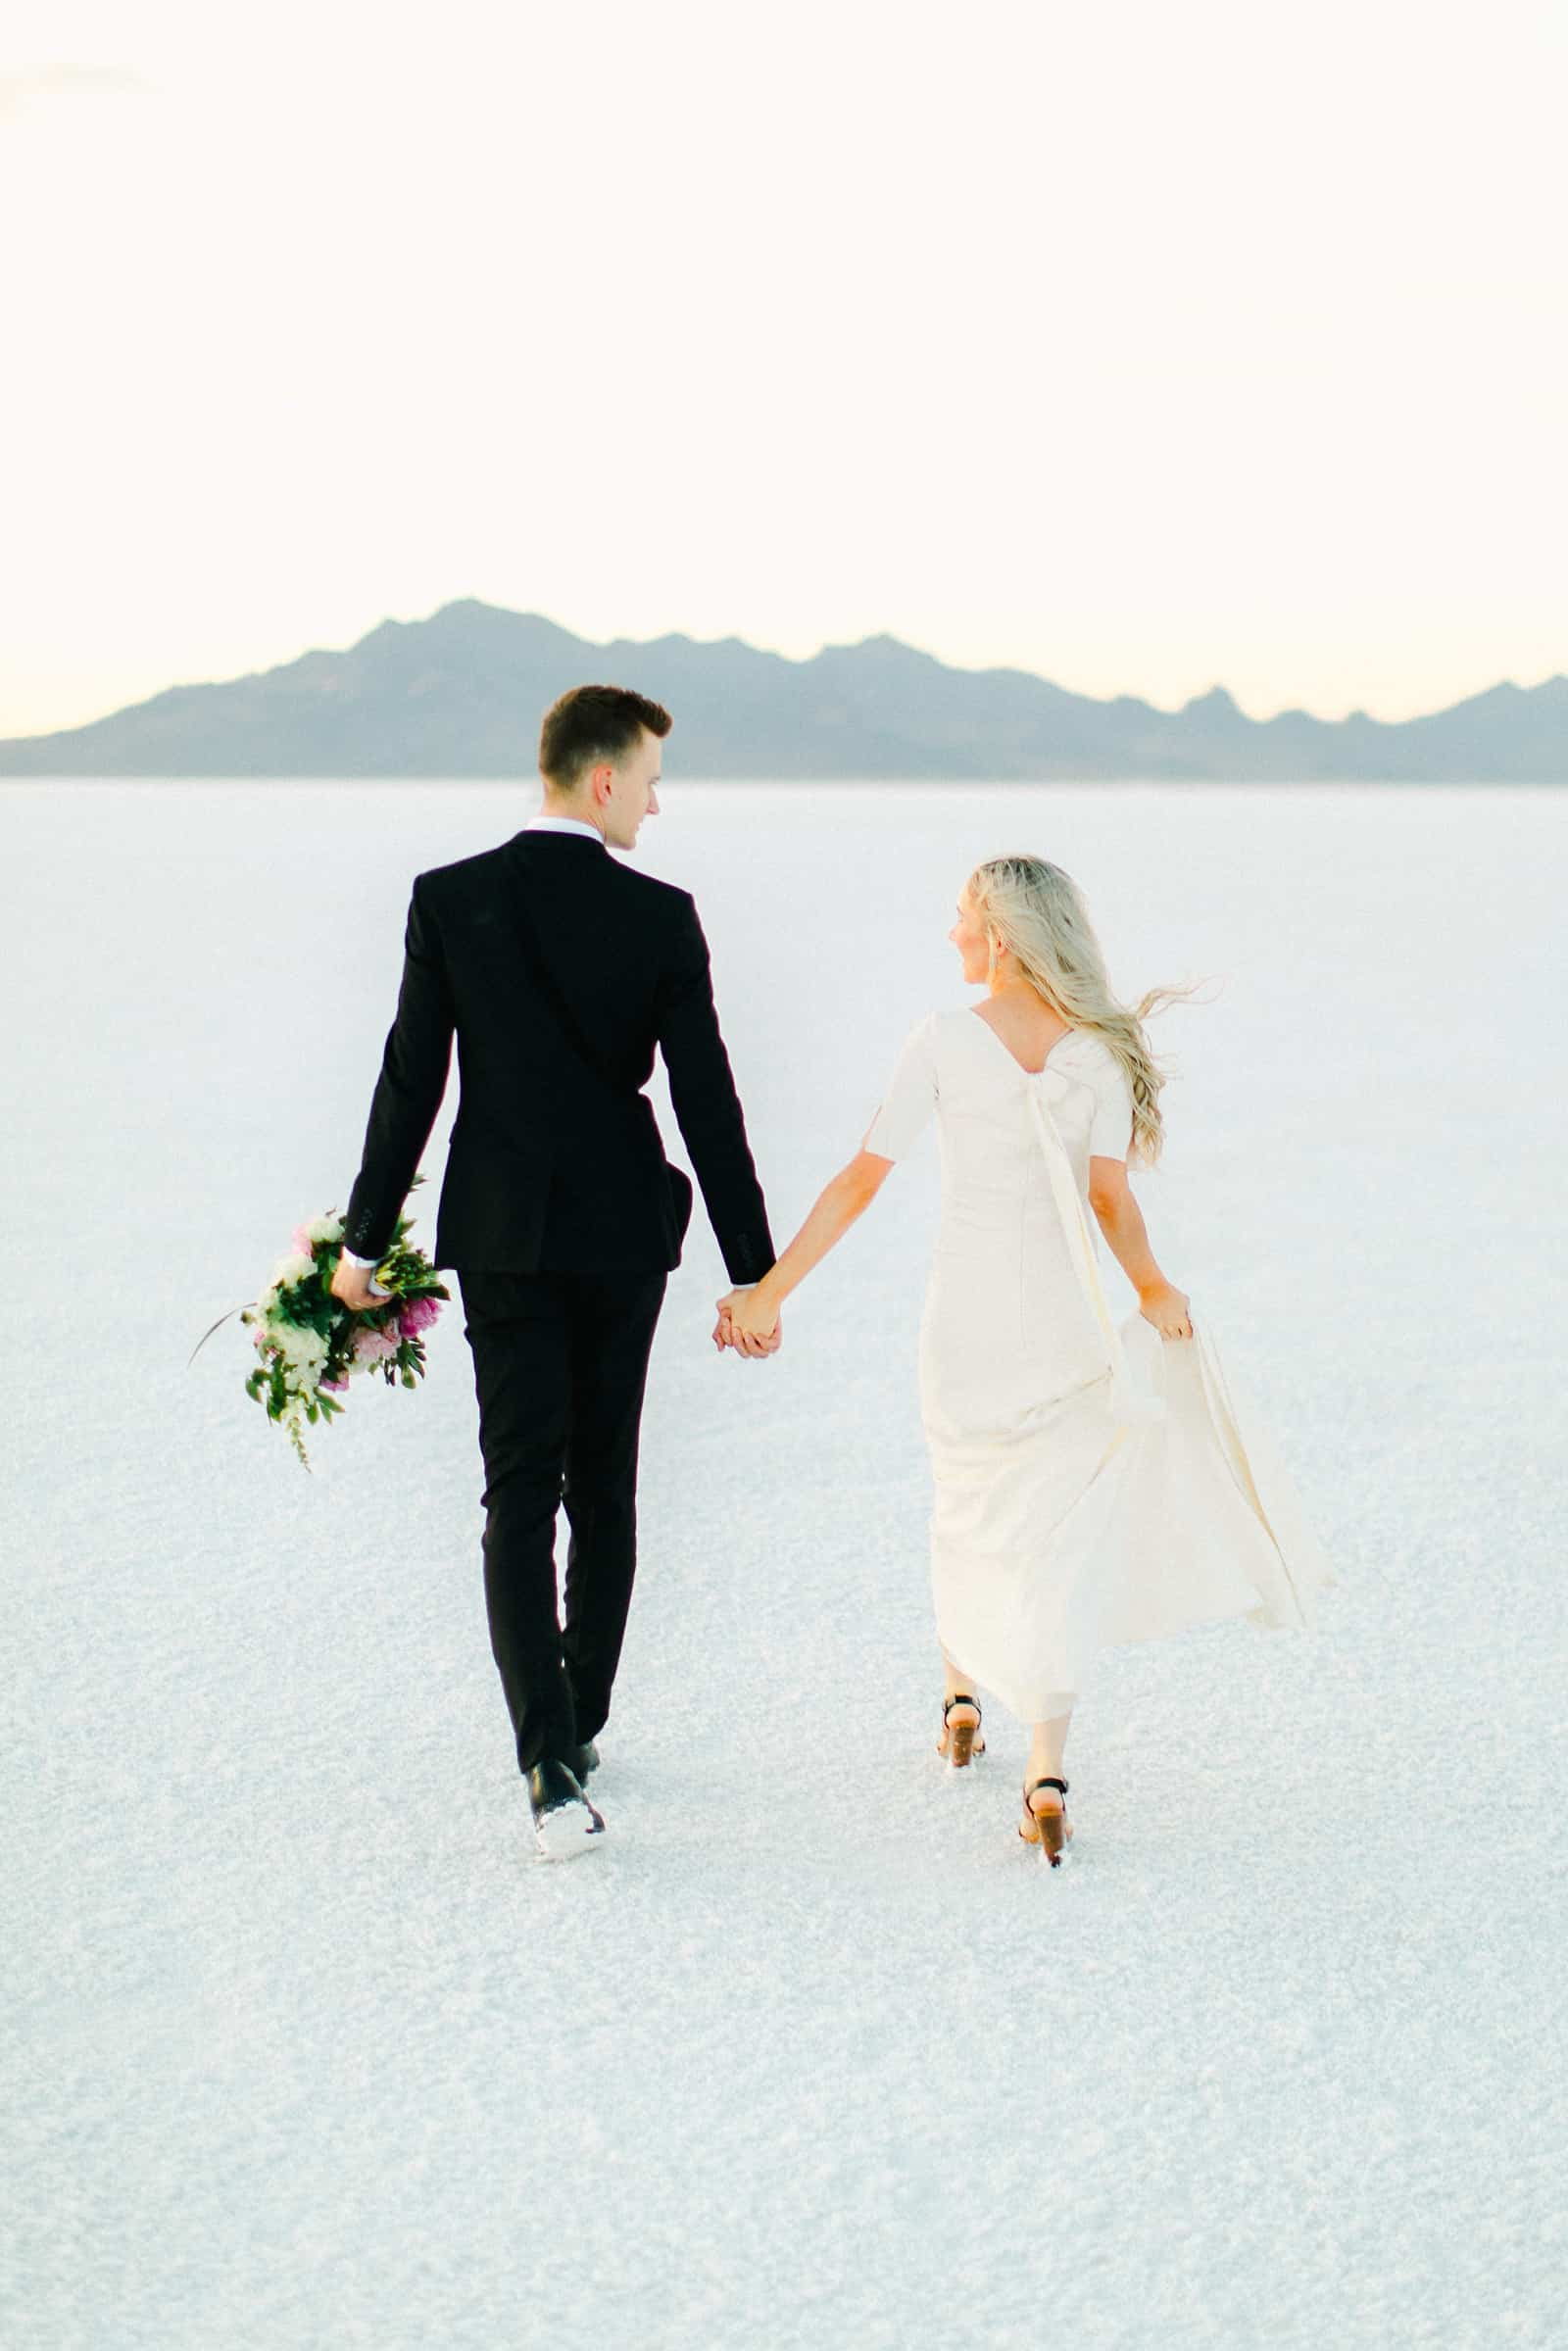 Bonneville Salt Flats Utah Wedding Photography, destination wedding, light and airy film photography bride and groom